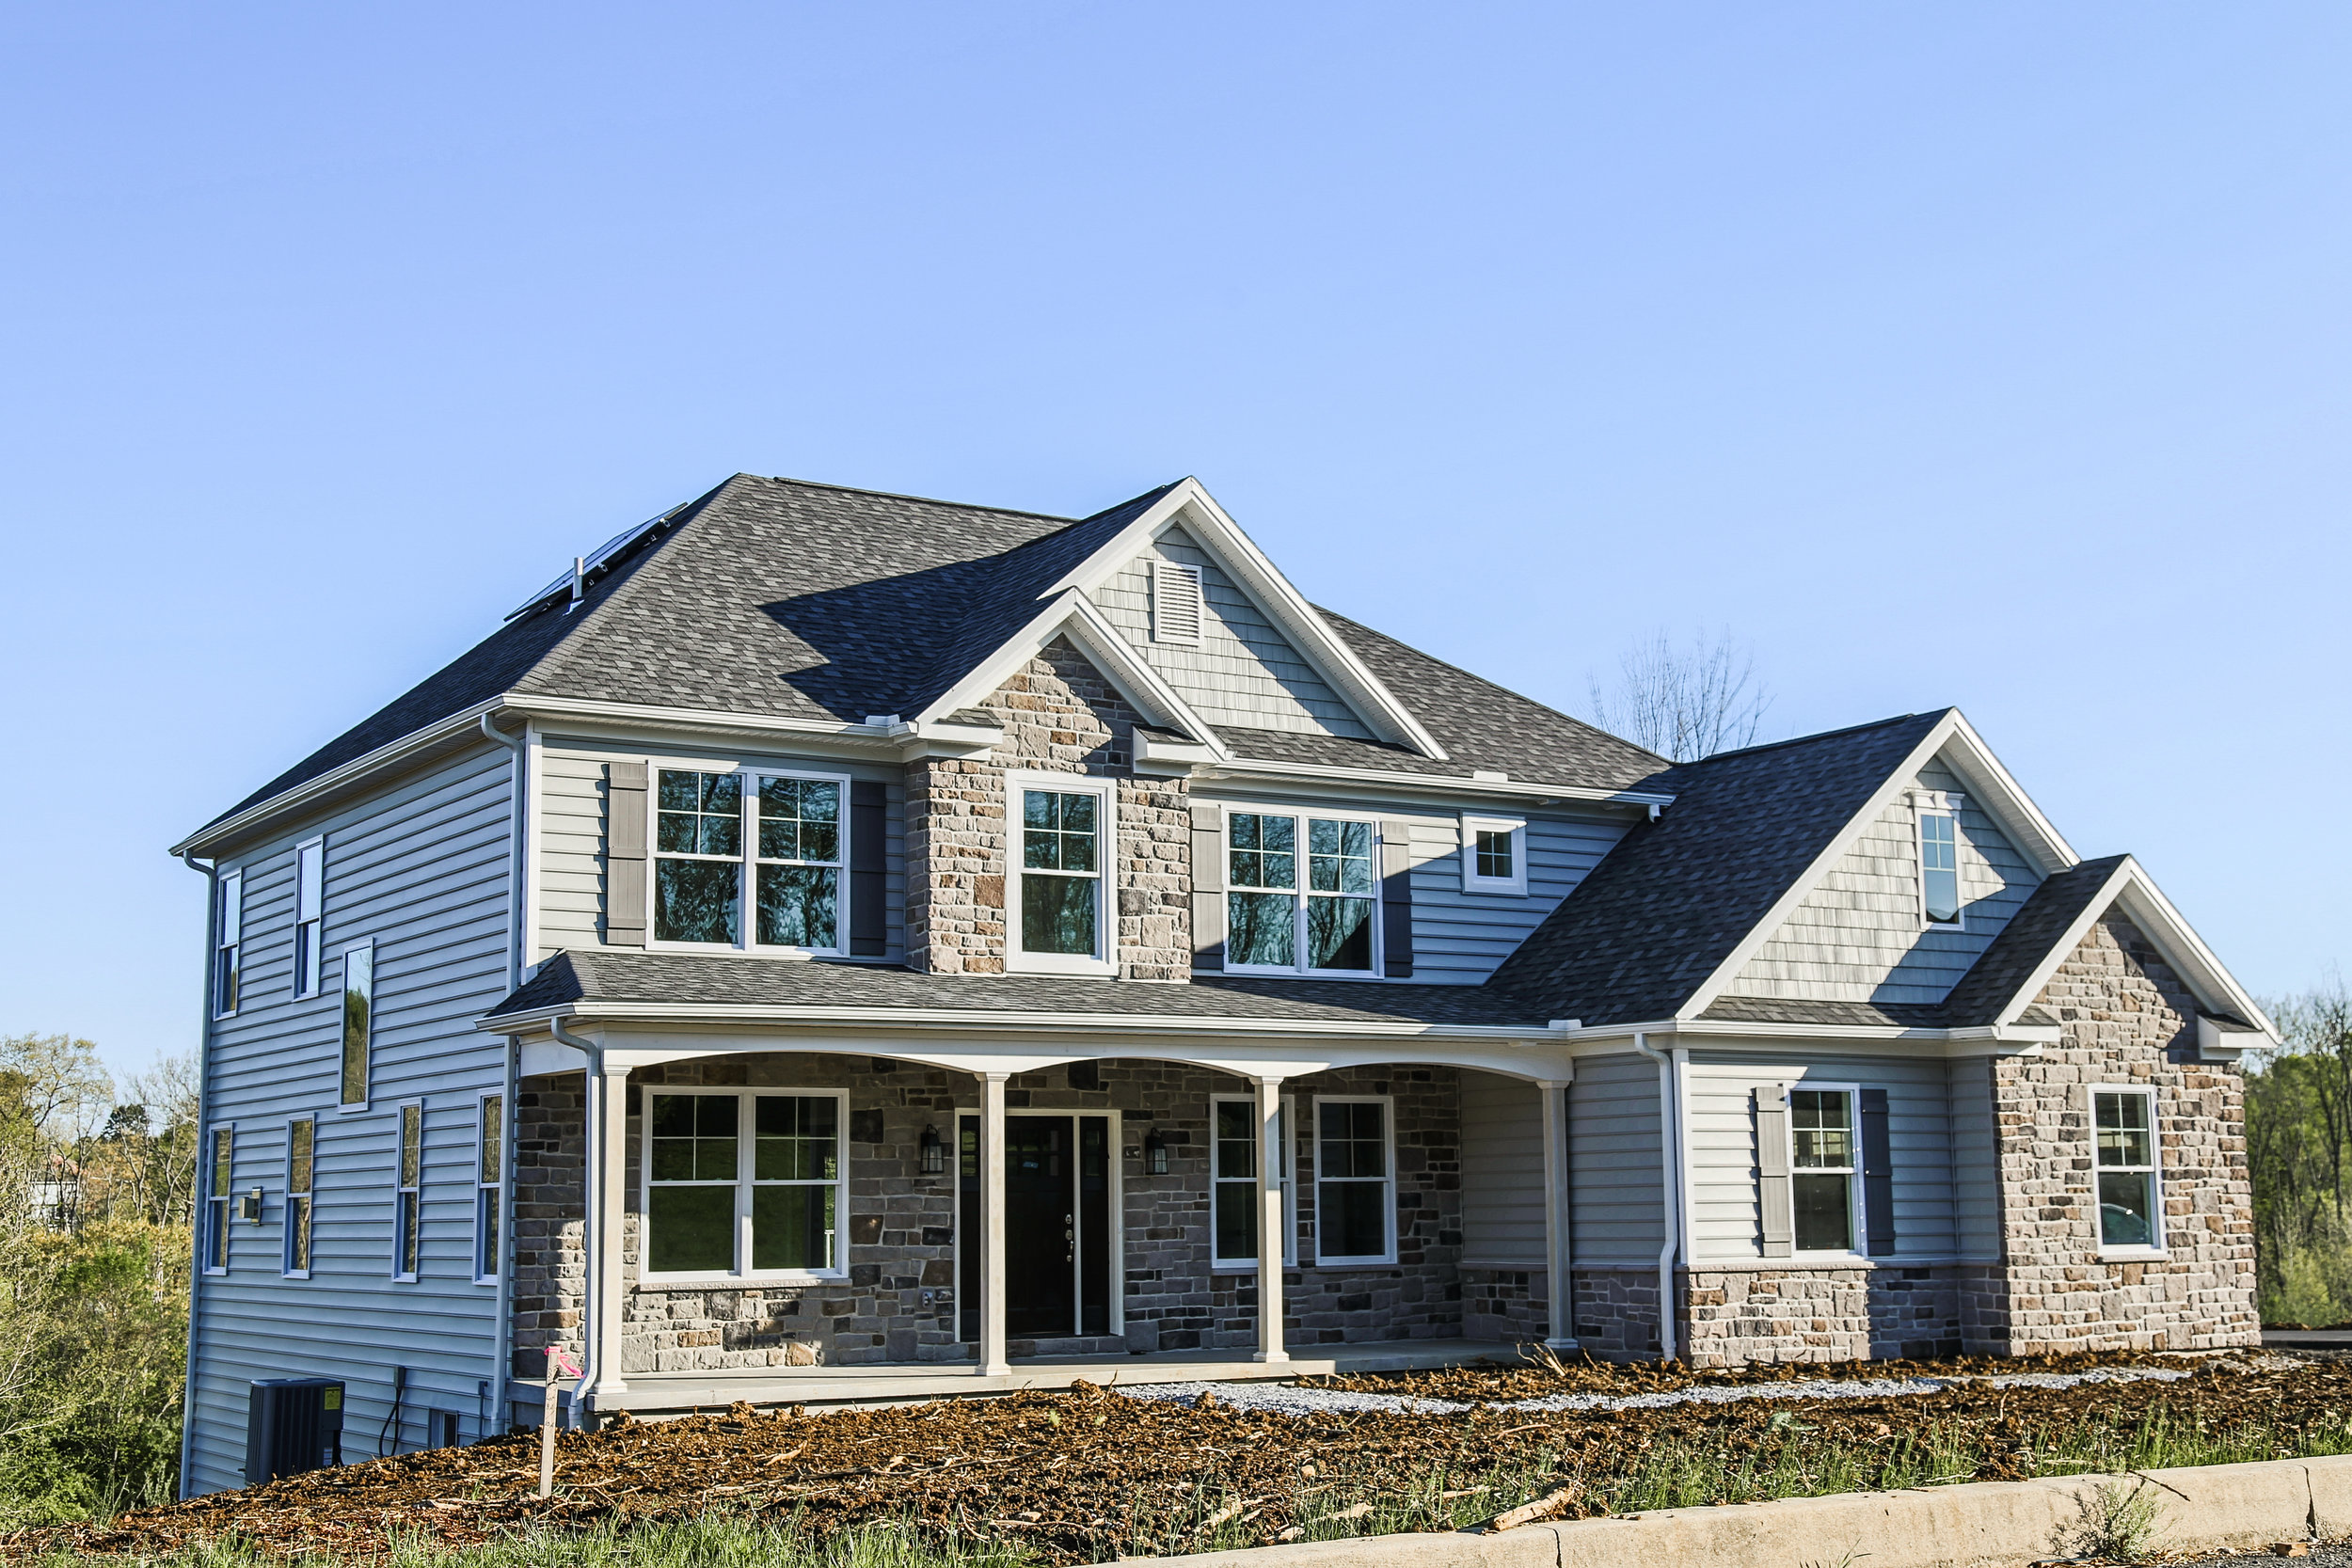 Beautiful stone work and hip roof design, full front porch and solar package featured